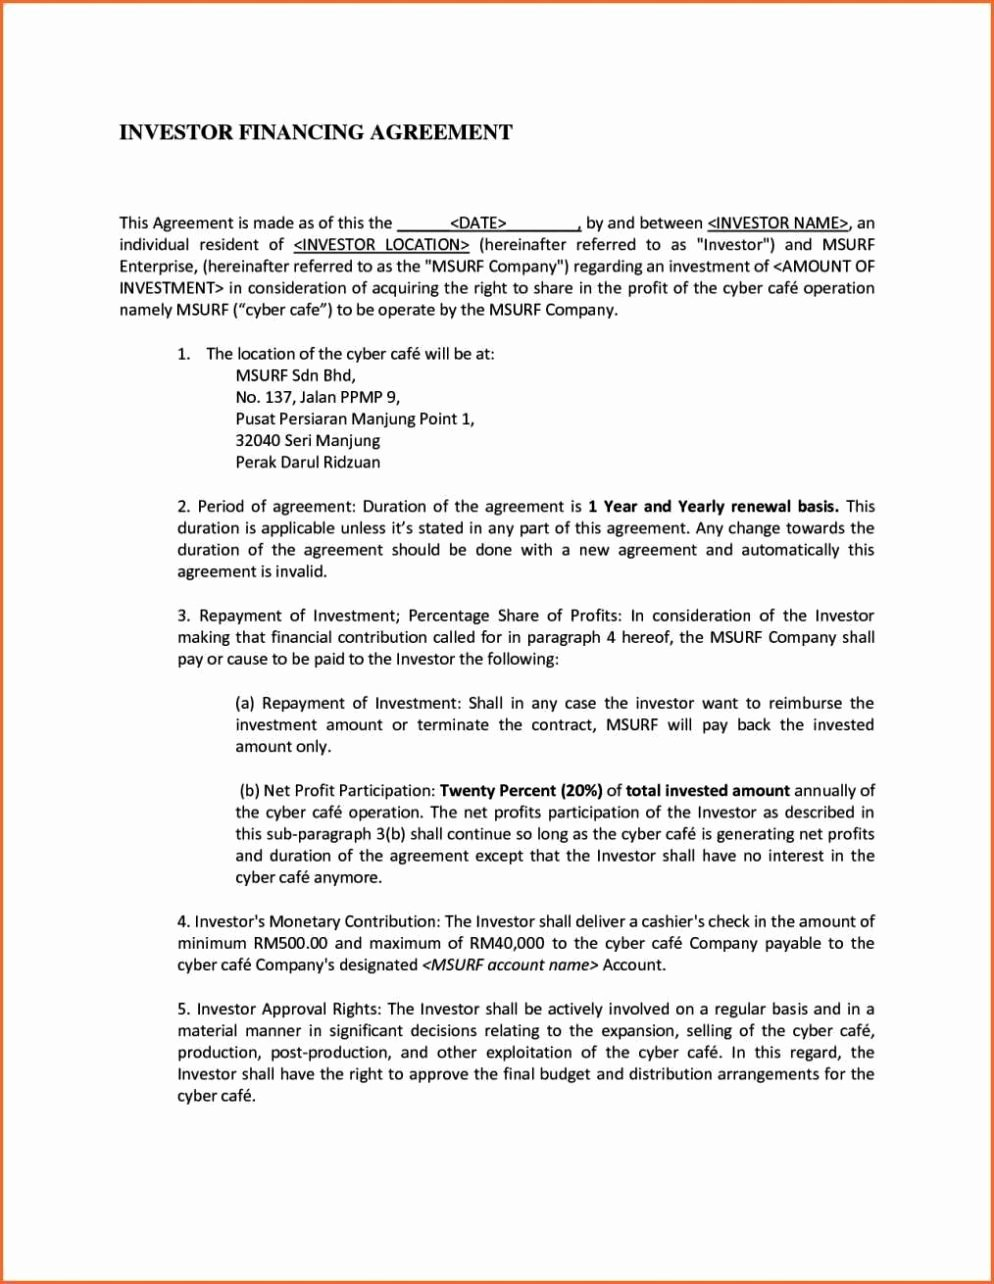 Talent Management Contract Template New Talent Management Contract Template Sampletemplatess